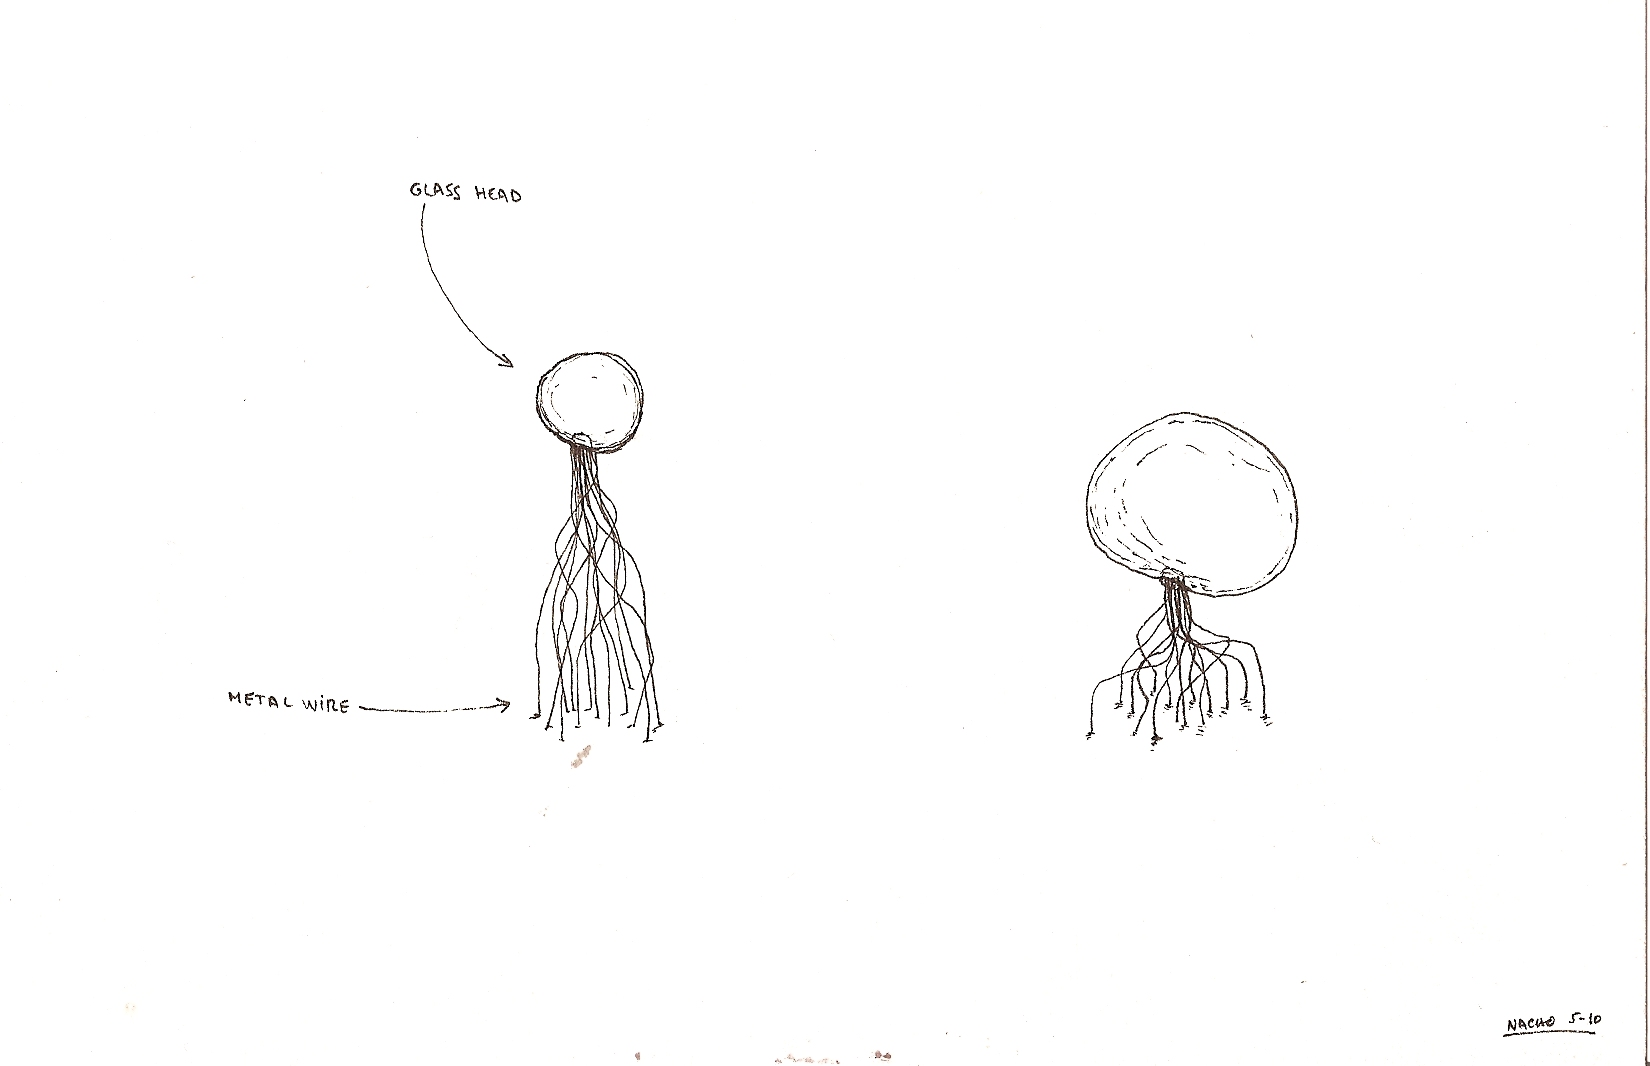 Design drawing by Nacho Carbonell for GlassLab at Art Basel 2010